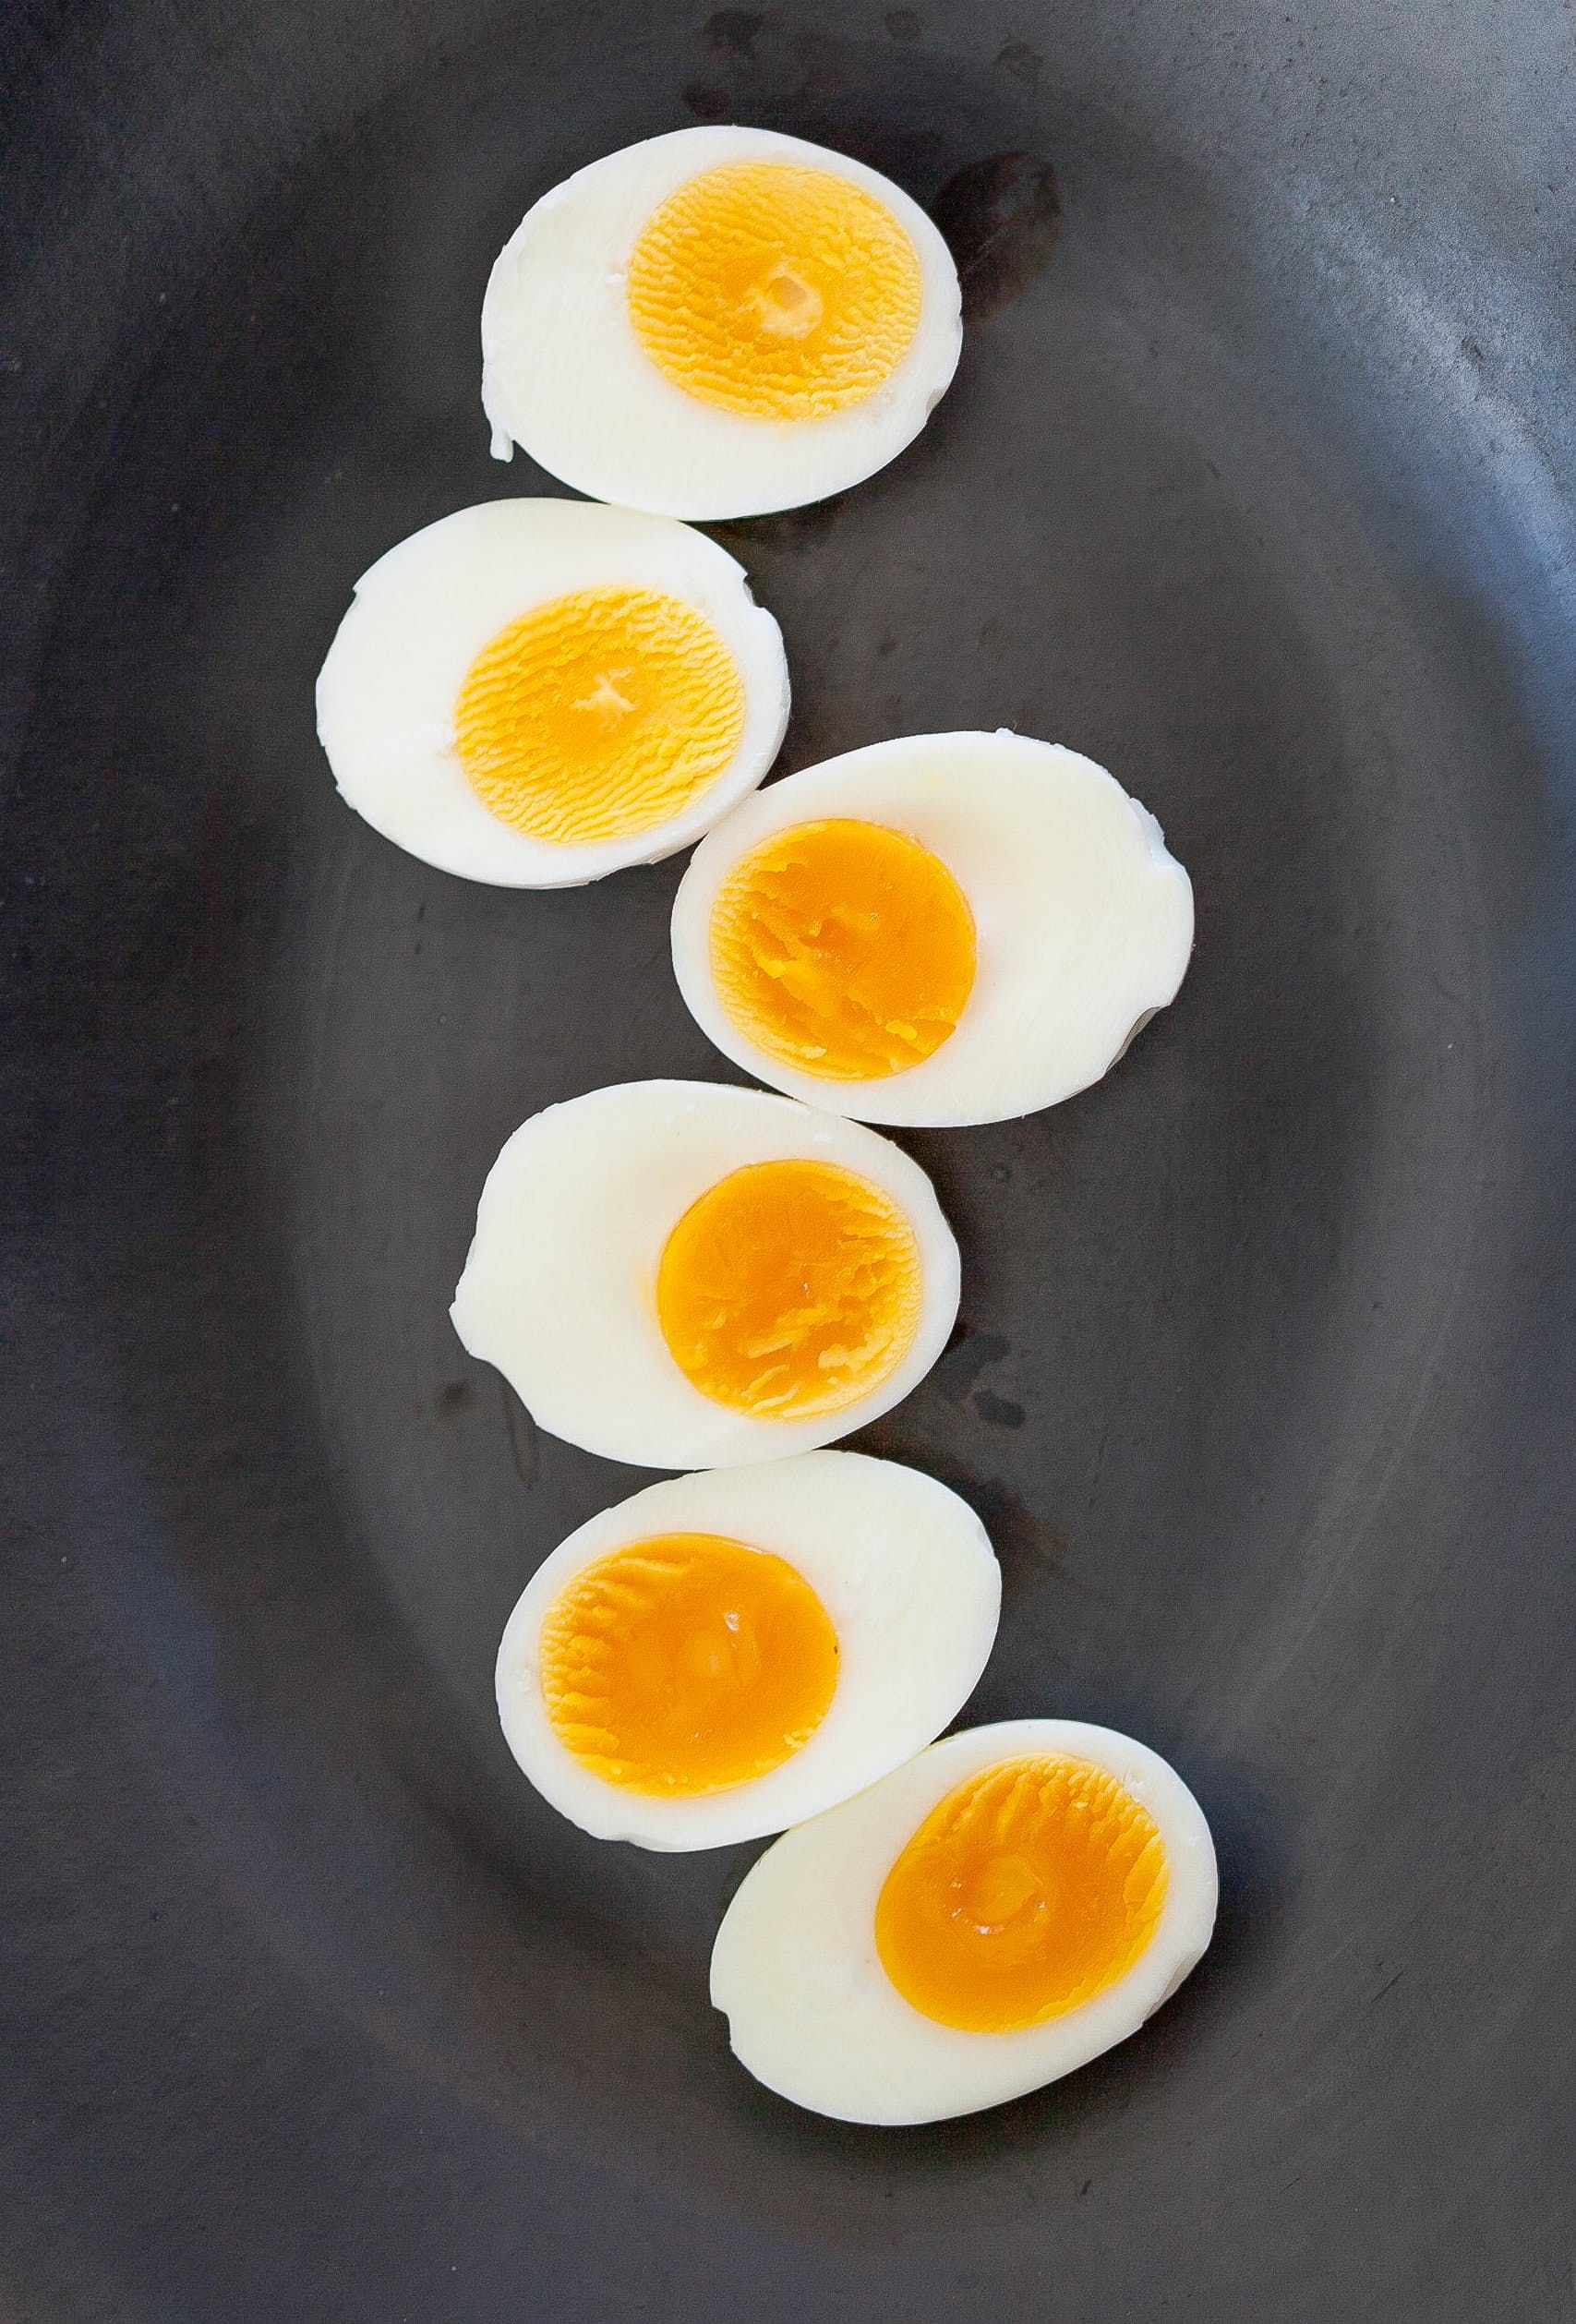 How To Boil Eggs Perfectly Every Time €� Cooking Lessons From The Kitchn